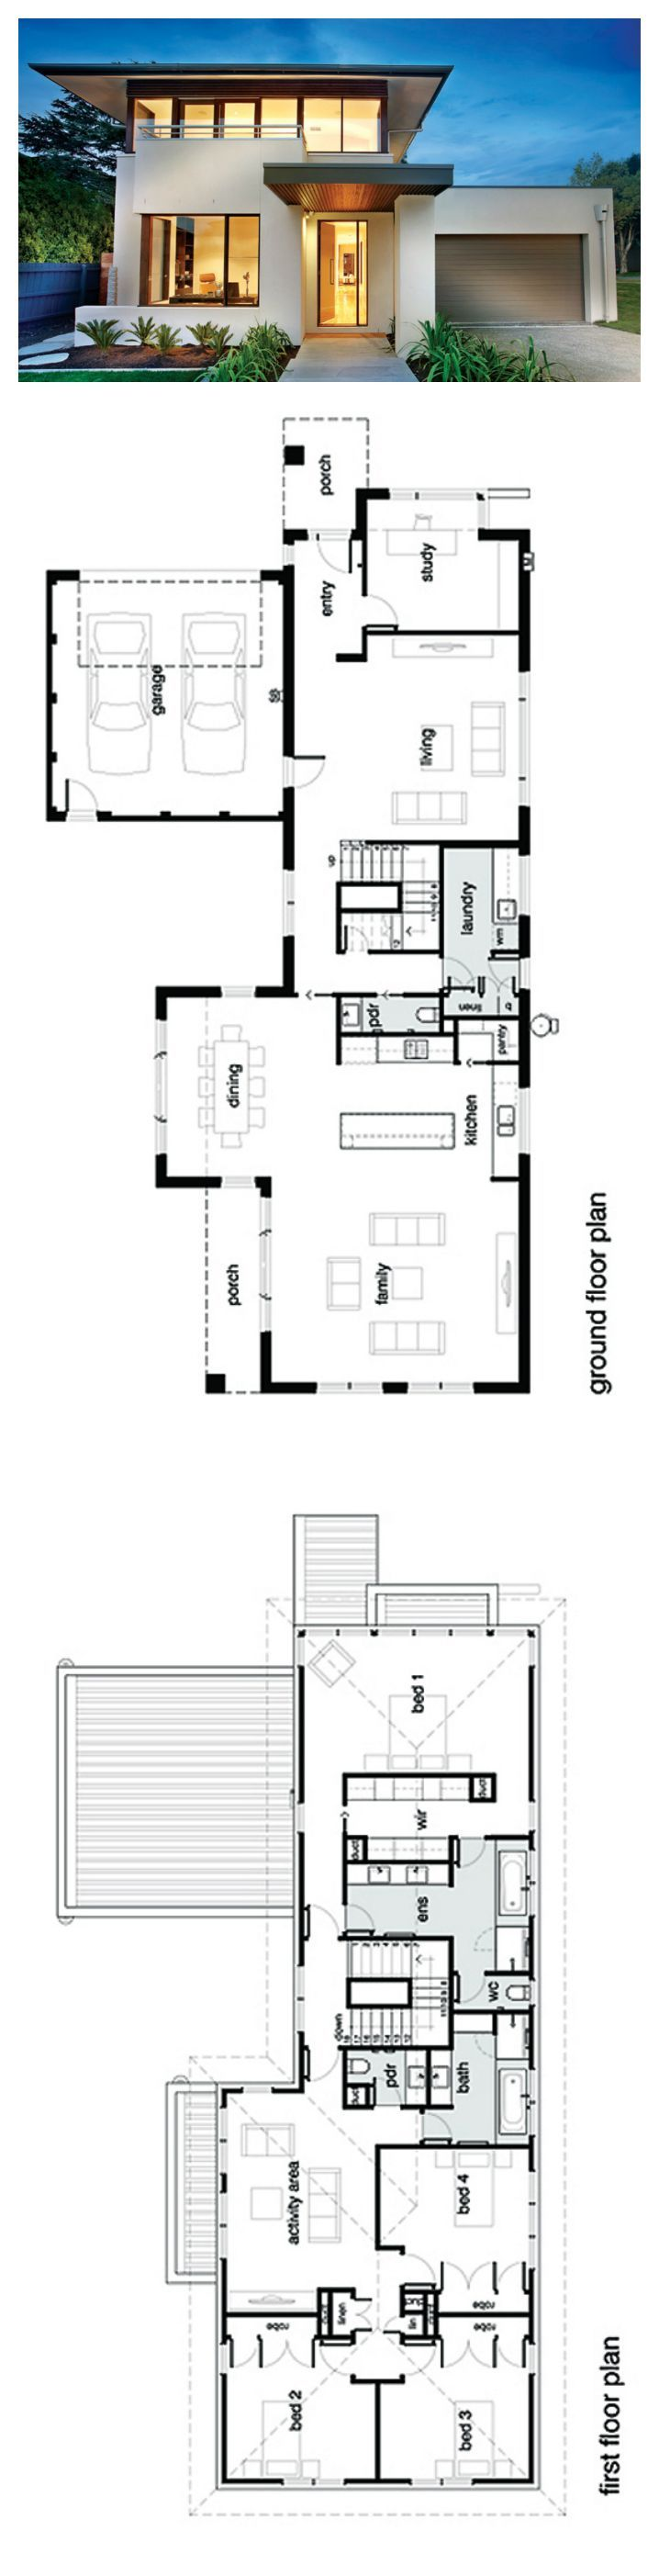 Best 25 modern house plans ideas on pinterest modern for 2 floor house design